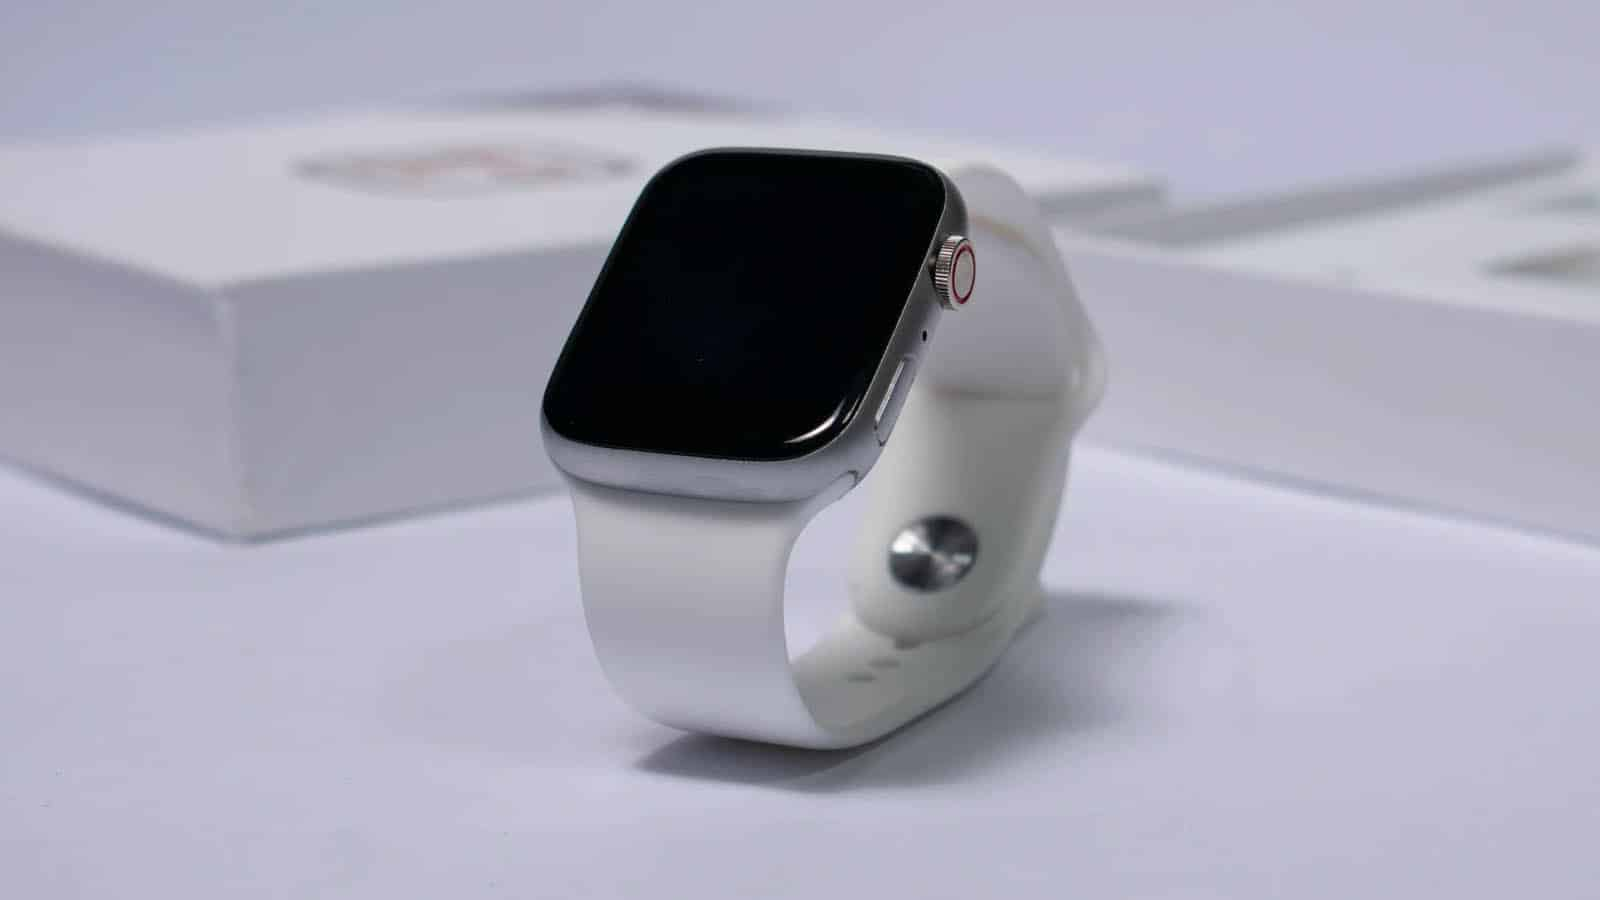 apple watch on table